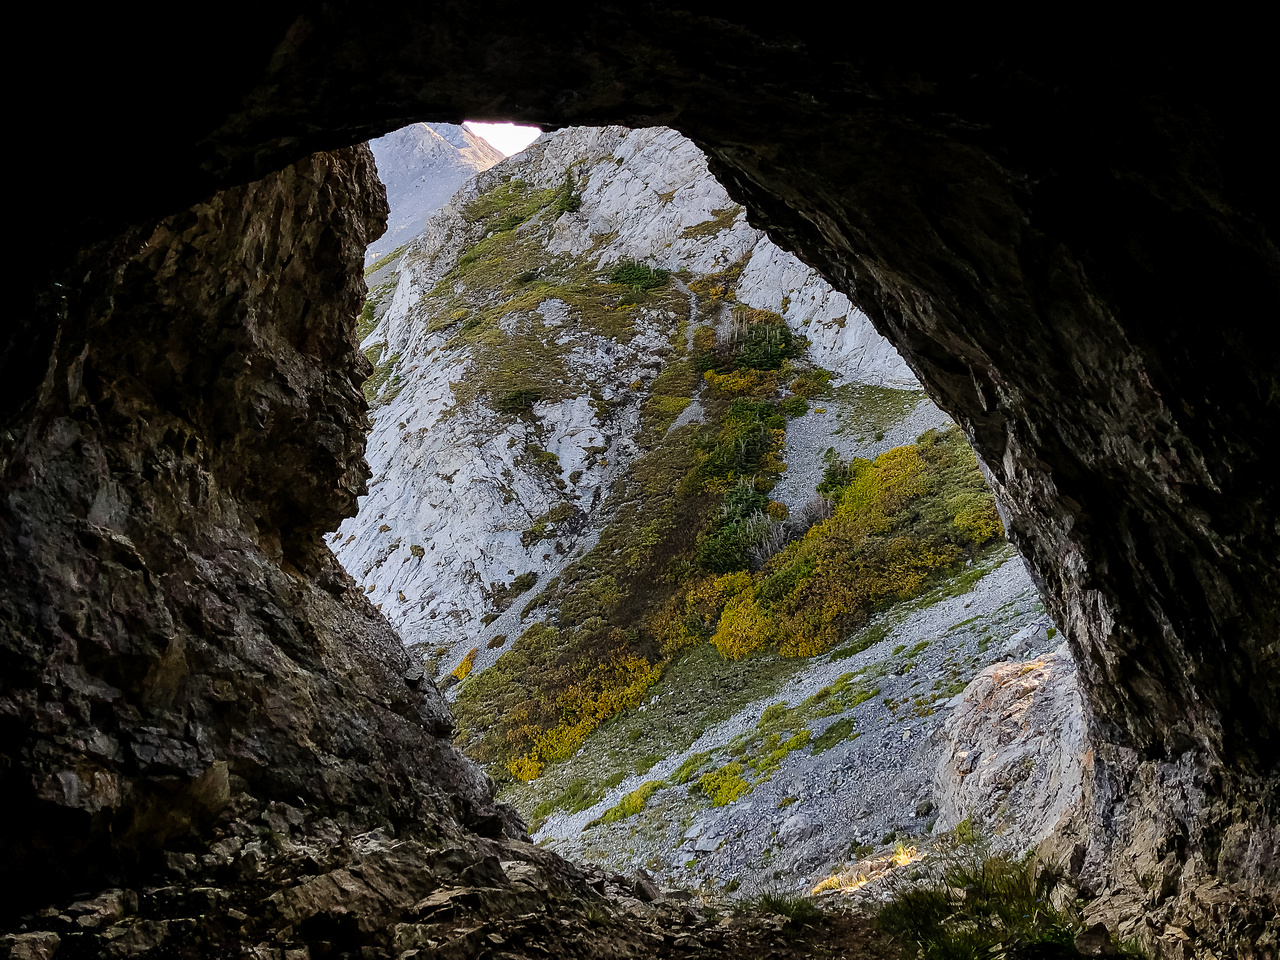 Looking out of the cave.